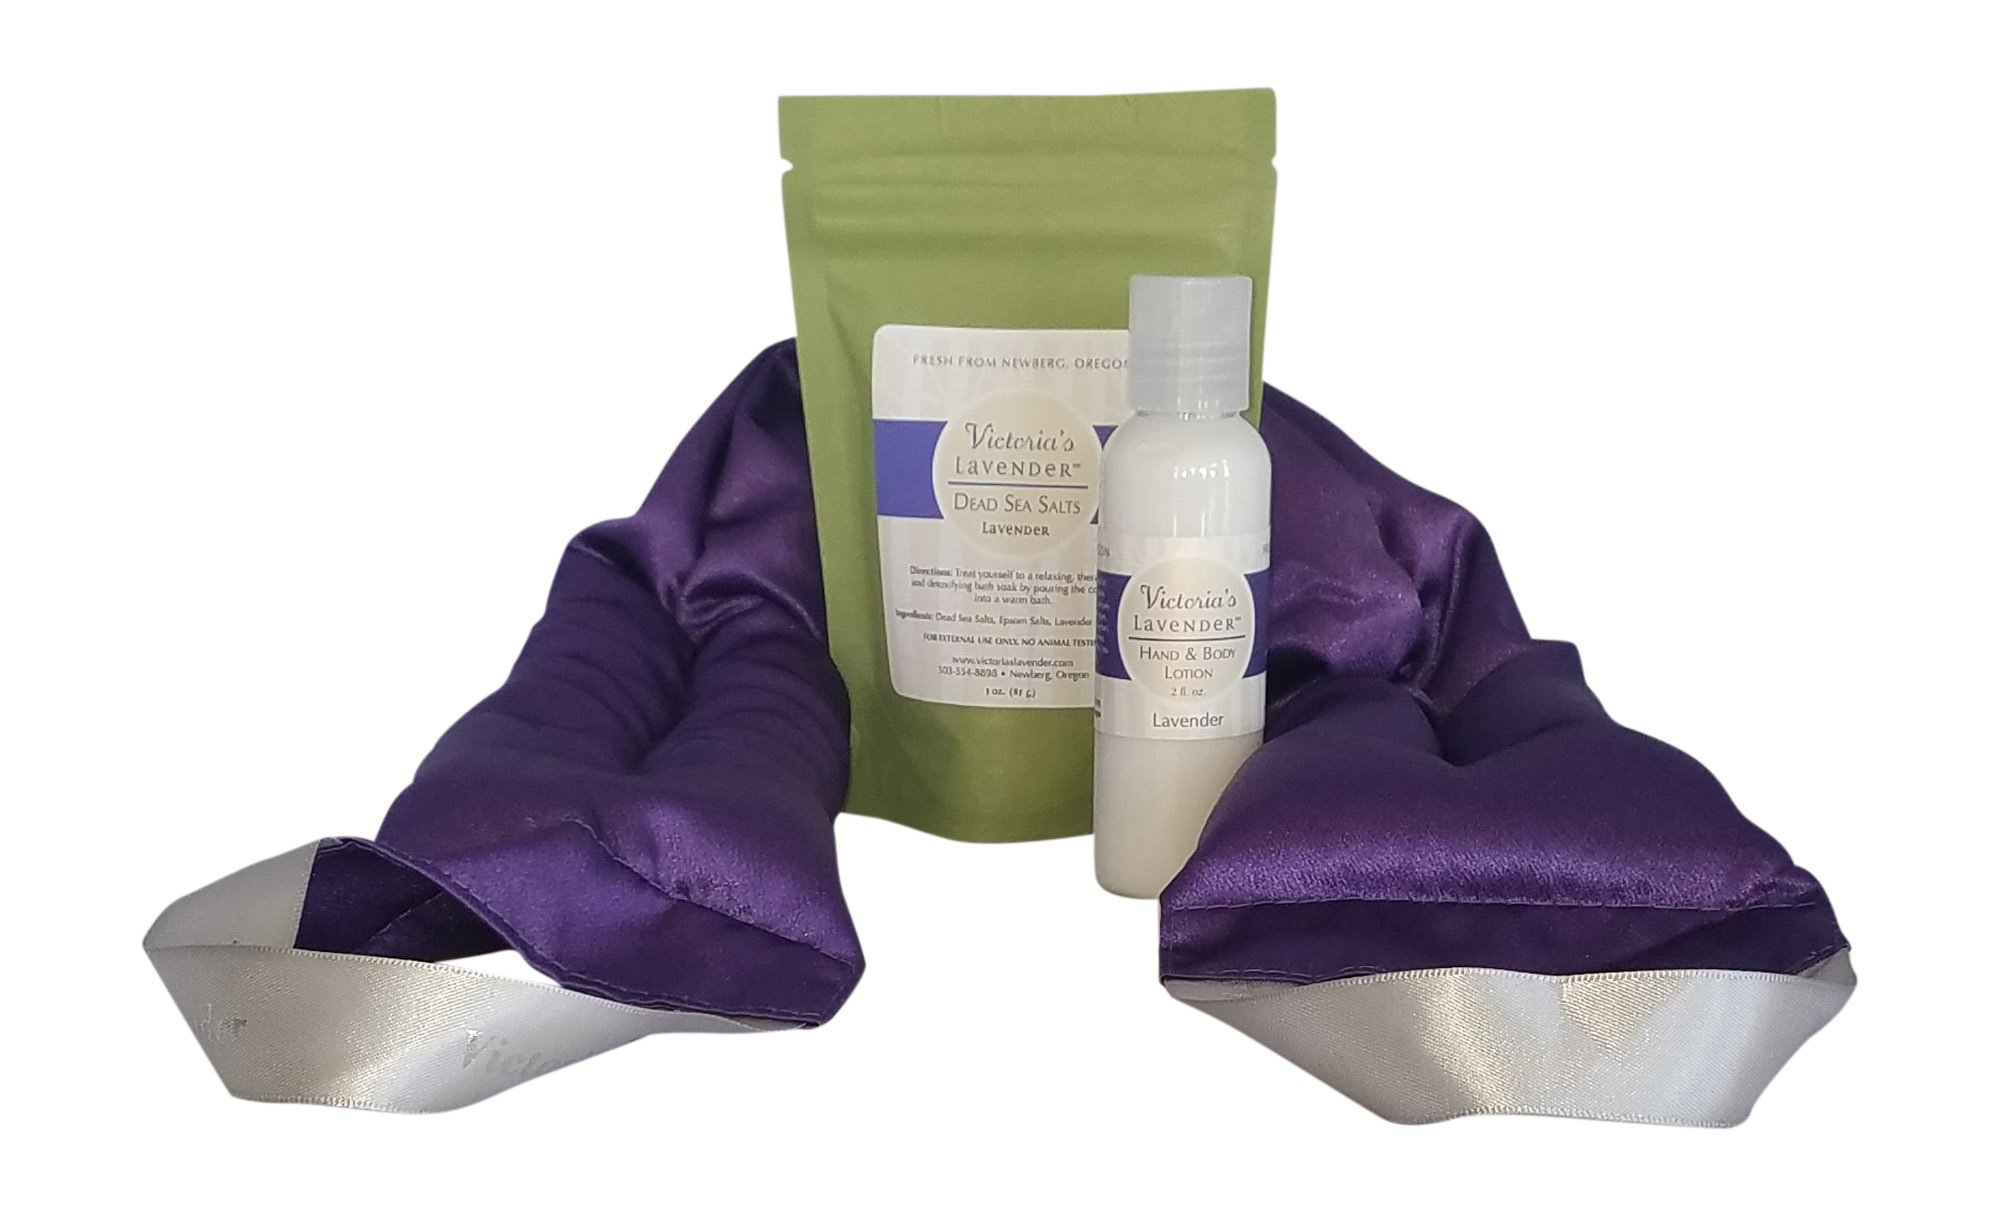 Victoria's Lavender NECK WRAP GIFT SET with LAVENDER BATH SALTS, LAVENDER LOTION Perfect for Aromatherapy gift for Relaxation and Good Night's Sleep